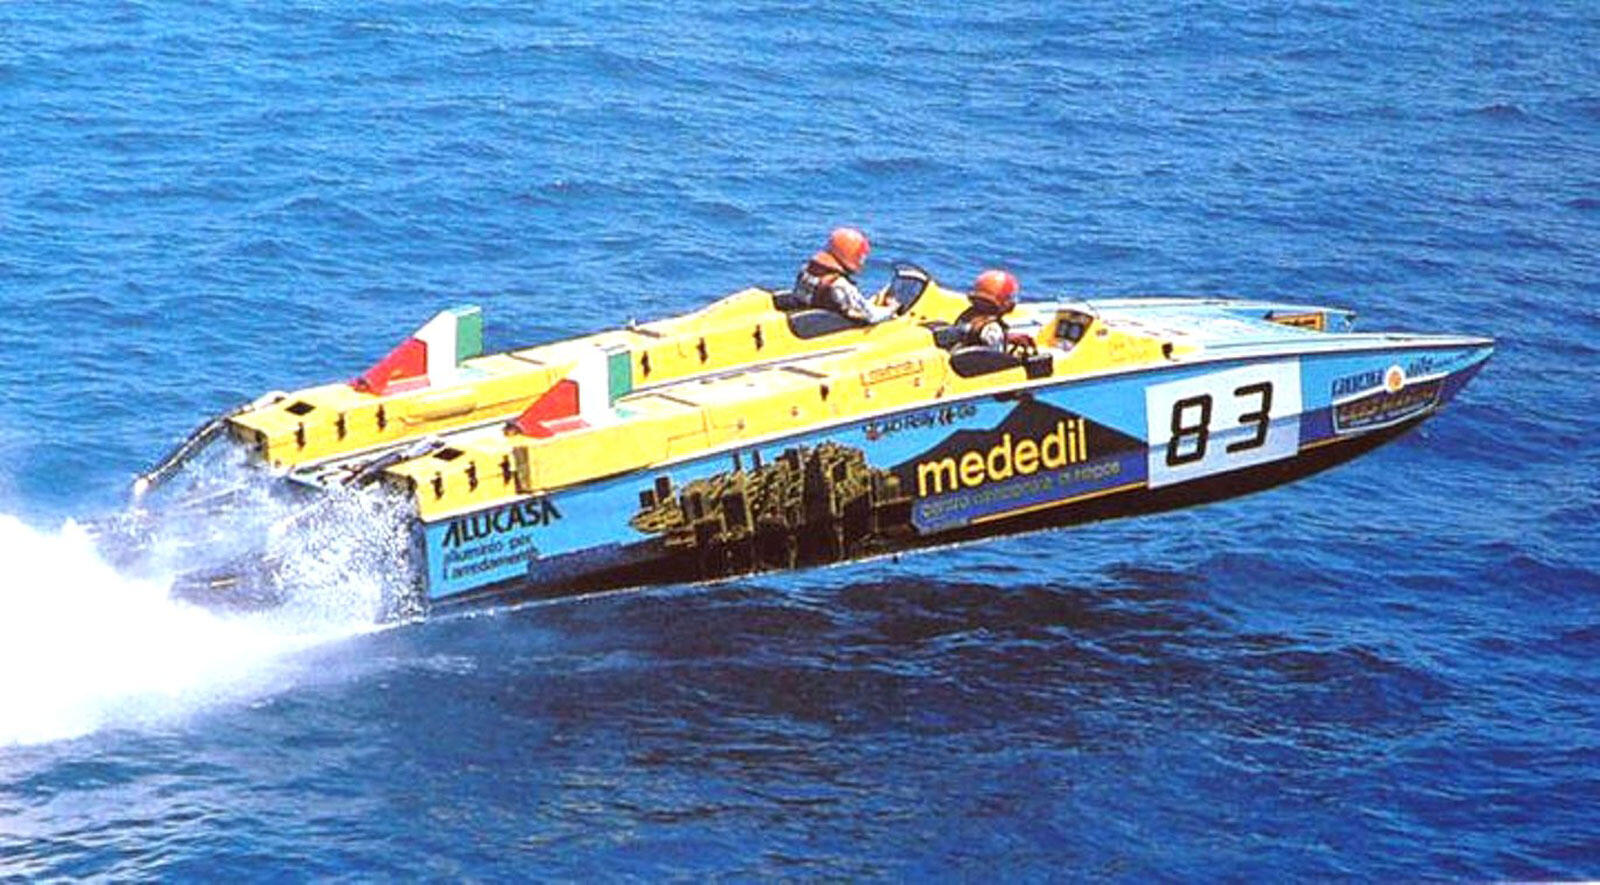 Full throttle with a Neapolitan Legend in Offshore powerboat racing